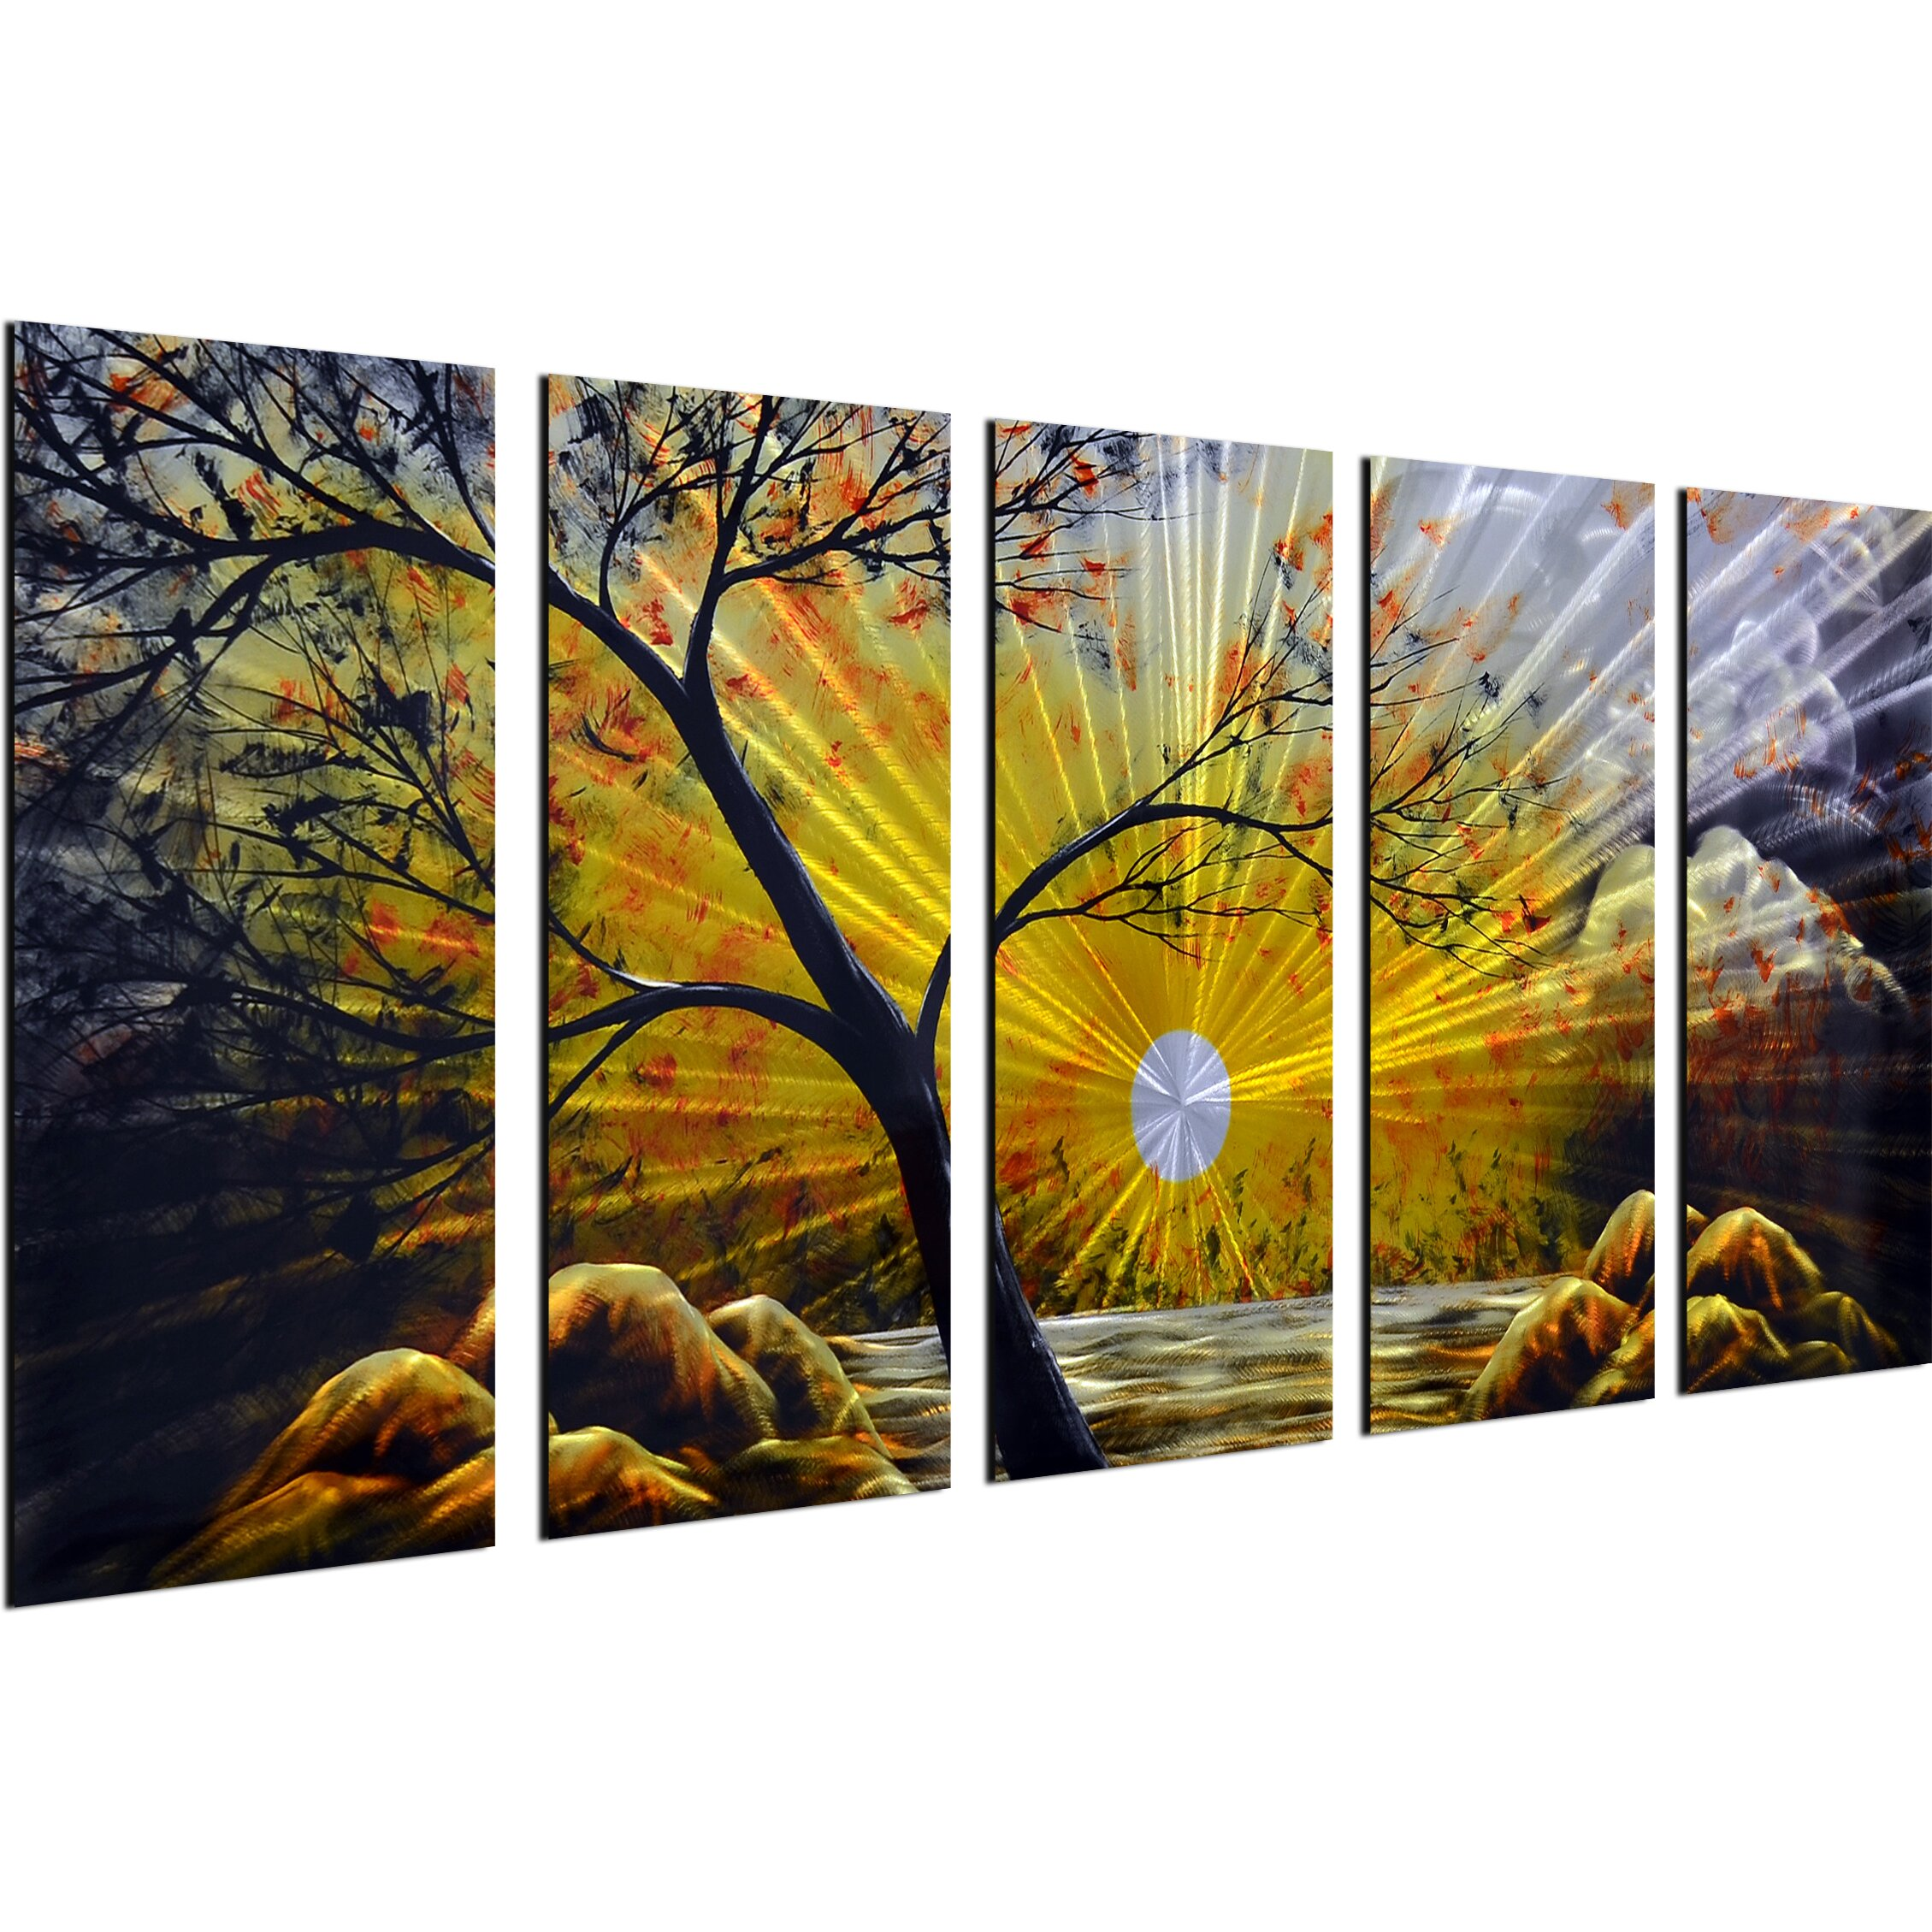 Omax decor 5 piece mother natures finest wall d cor set for 5 piece mural